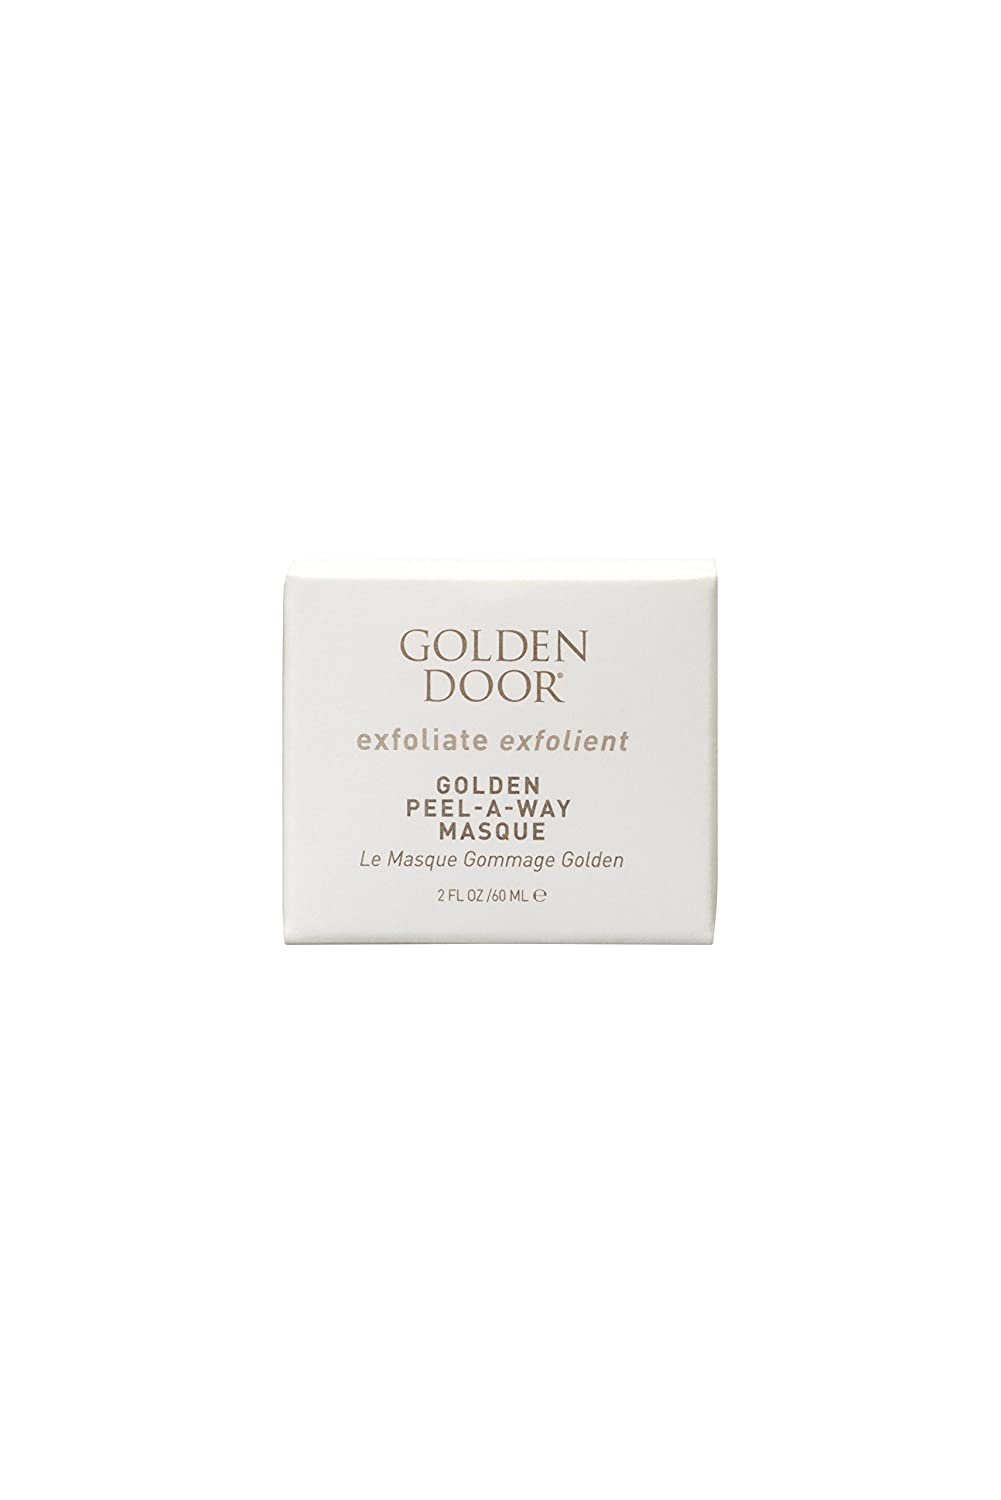 Golden Door Peel-Away-Masque, 2 fl oz, Luxurious Gold mask, hyaluronic Acid, Peel Off mask, Hydrate While You exfoliate Dead Skin, Radiant Complexion, Brighten and Firm Skin, Botanical extracts